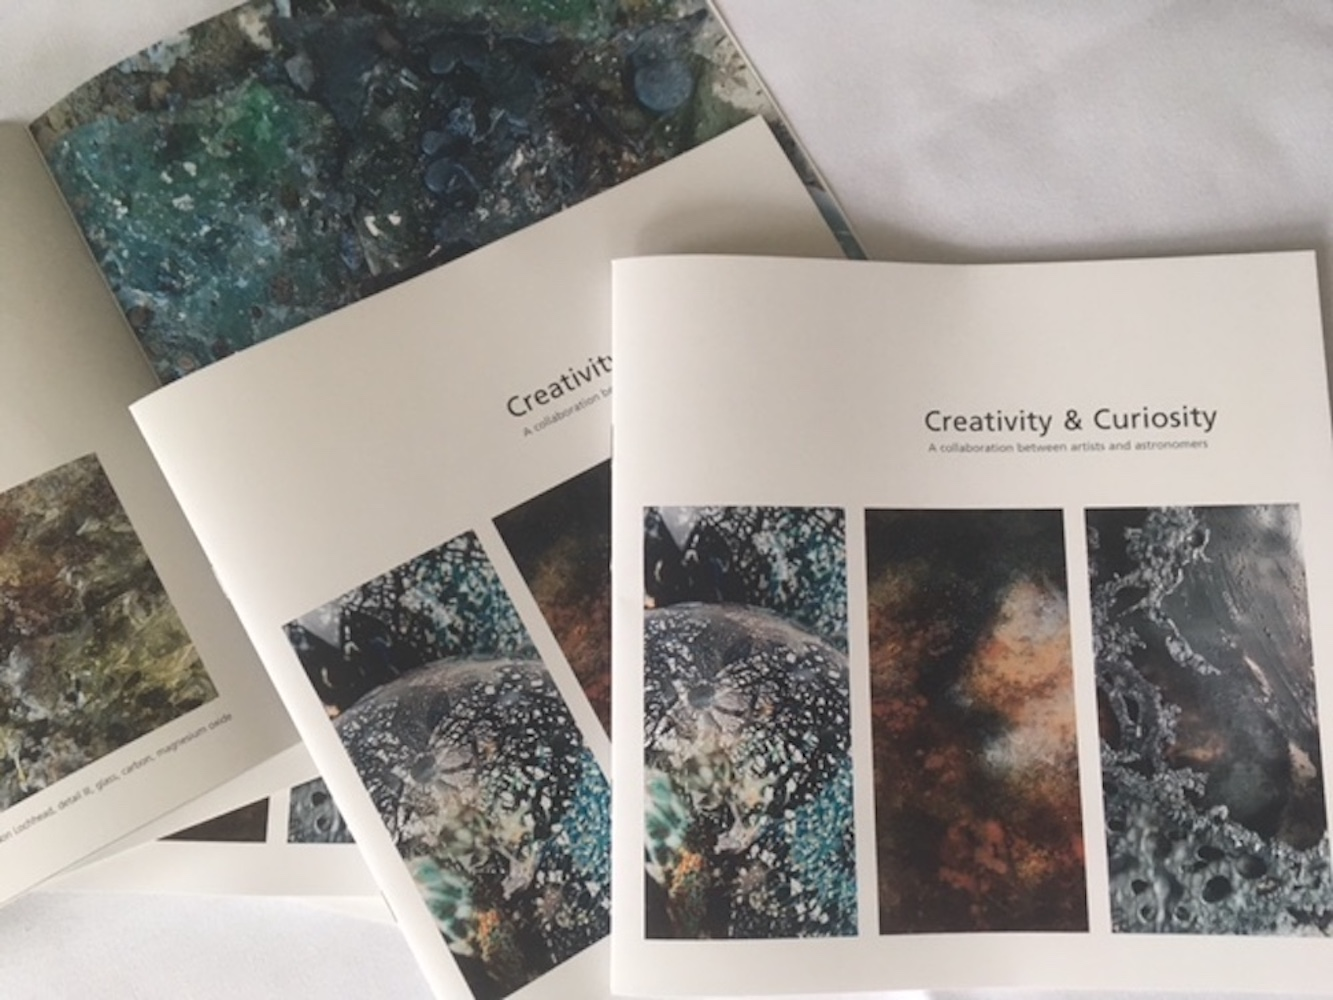 The catalogues have arrived, email me if you would like one.